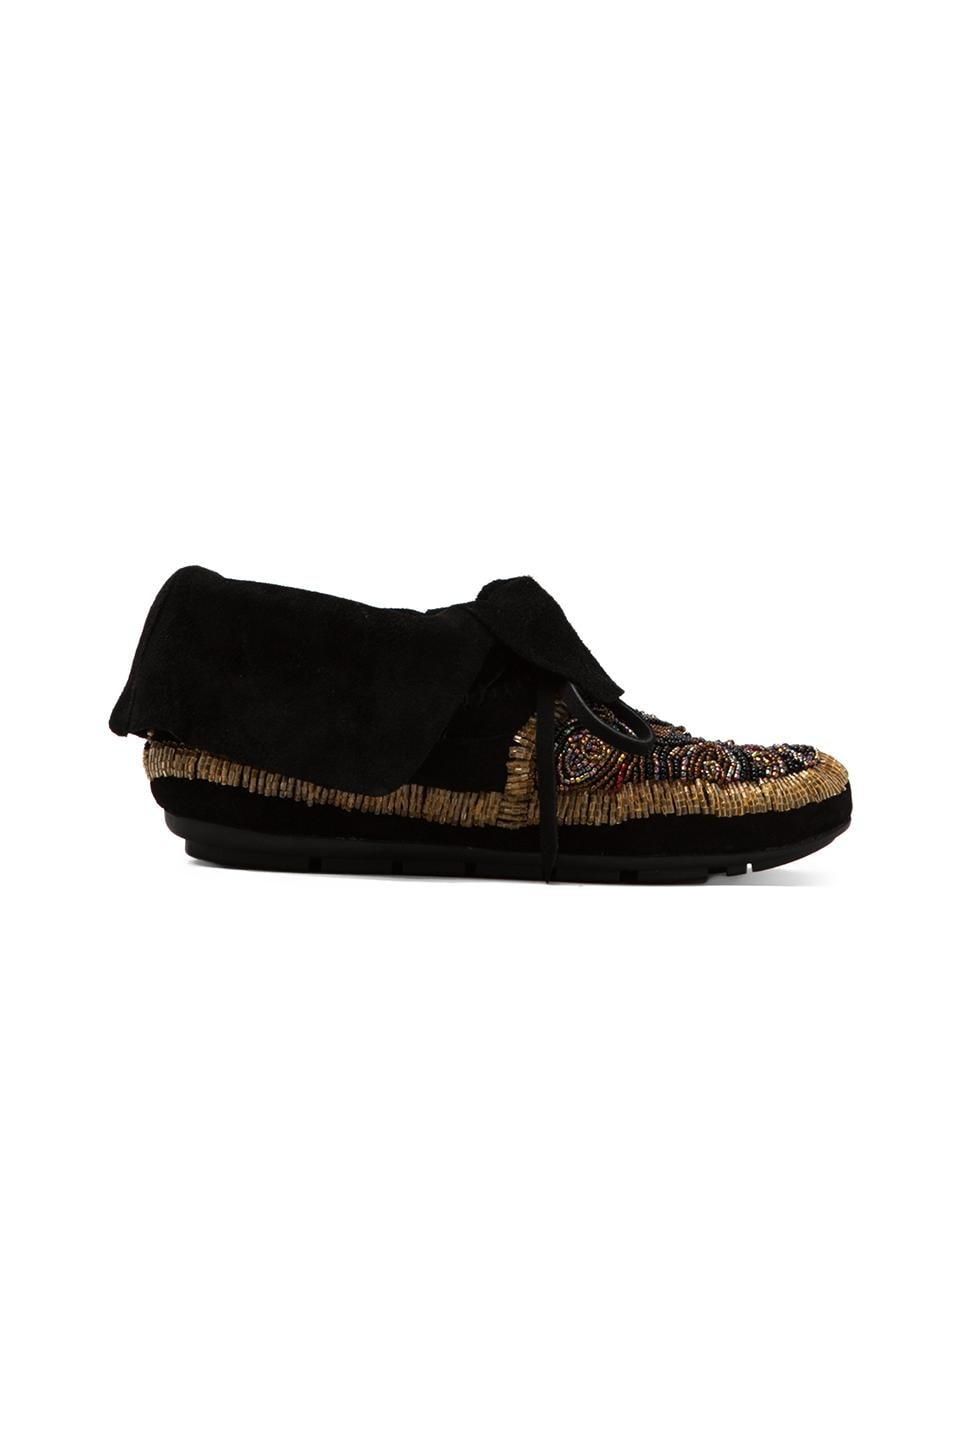 House of Harlow 1960 House of Harlow Mallory Moccasin in Black